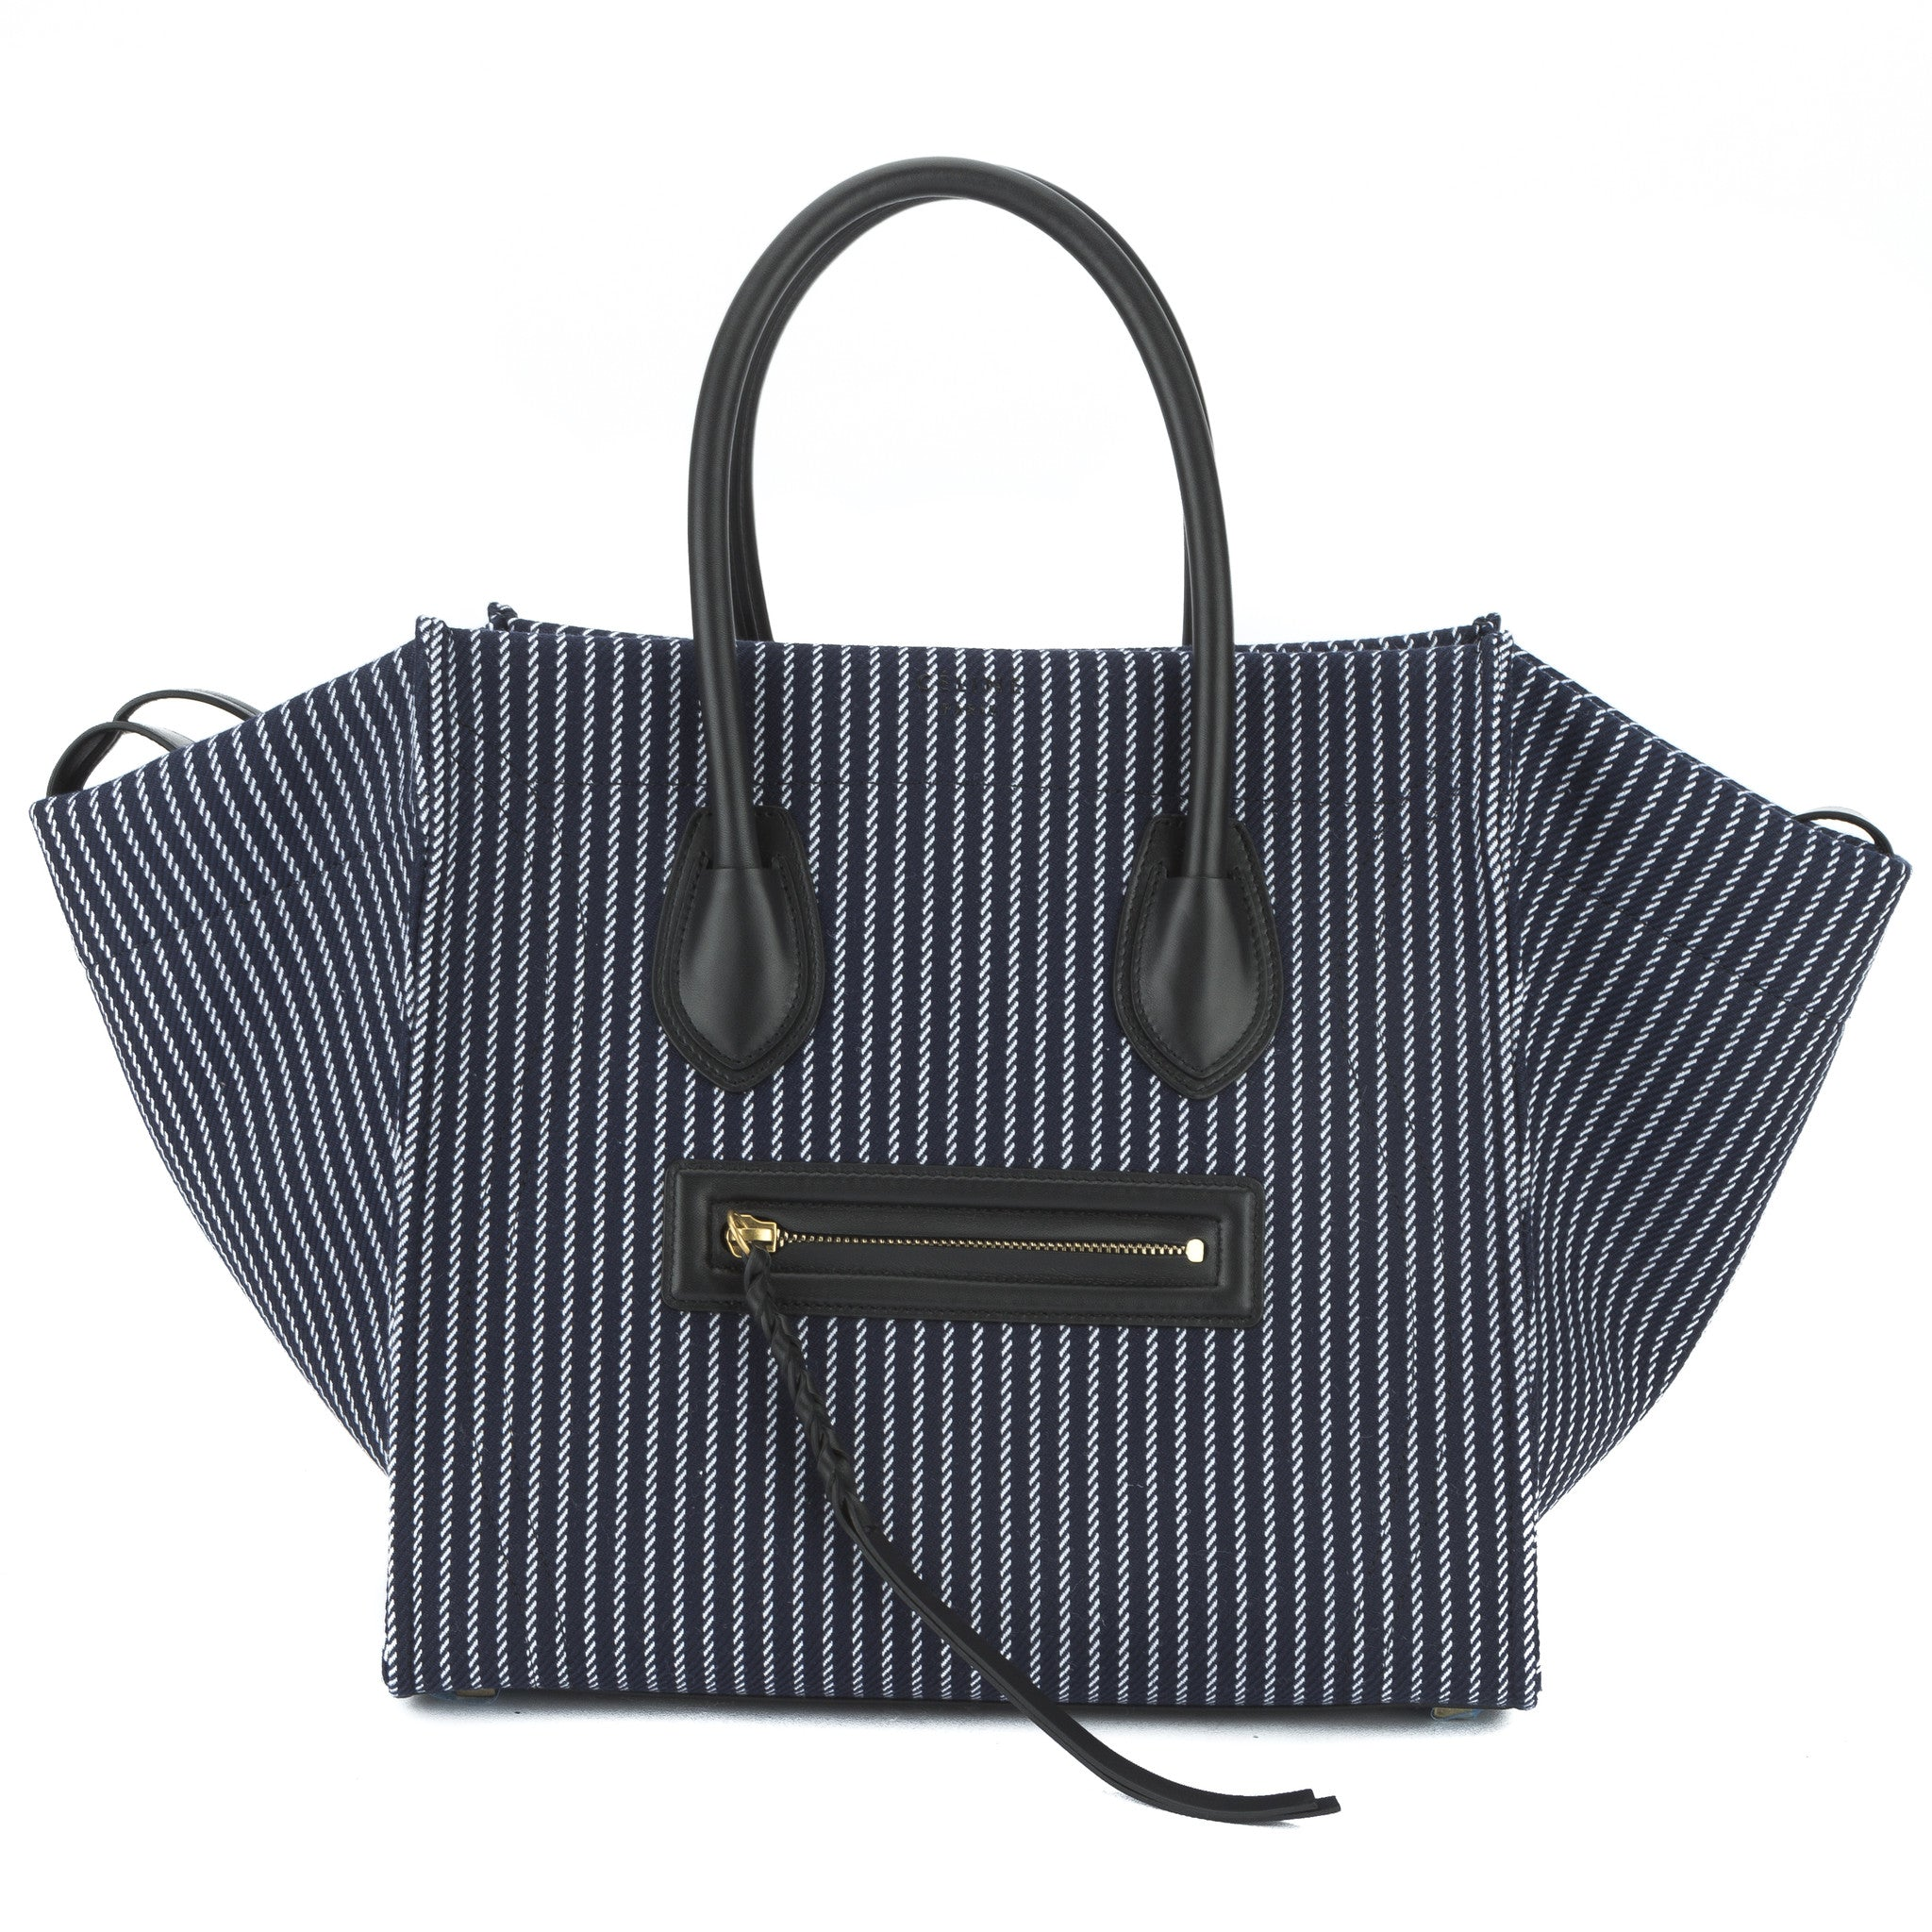 Celine Navy and White Textile Medium Phantom Luggage Tote Bag New with Tags 8fe90dfb469f8